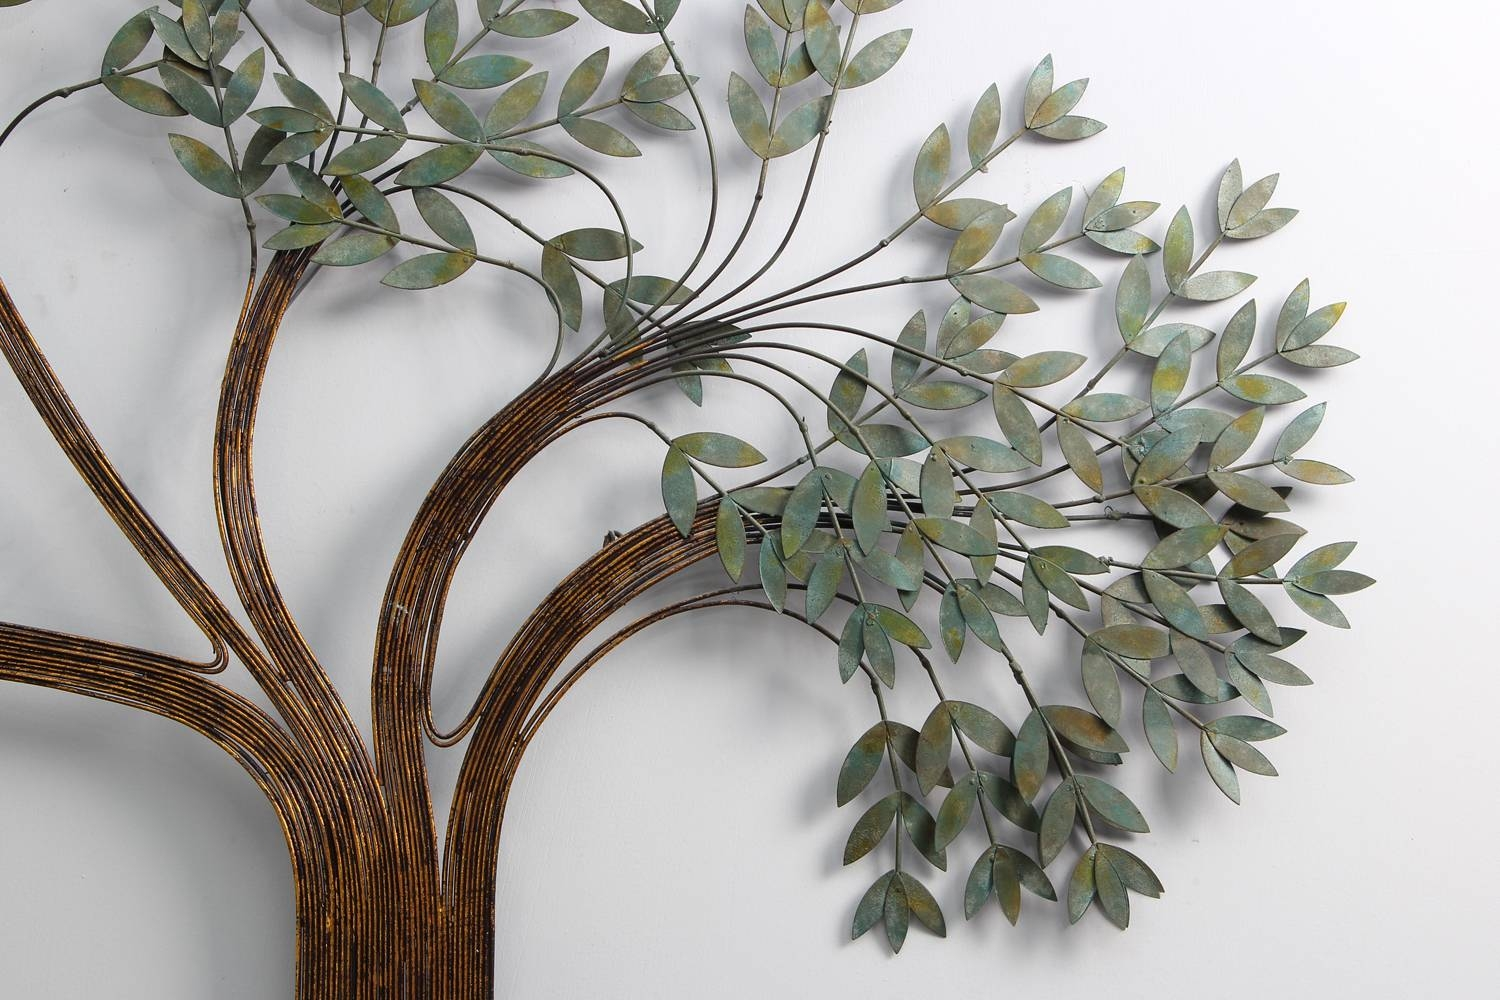 Nature Sculpture Wall Art Intended For Most Popular Tree Sculpture Wall Art (View 8 of 20)